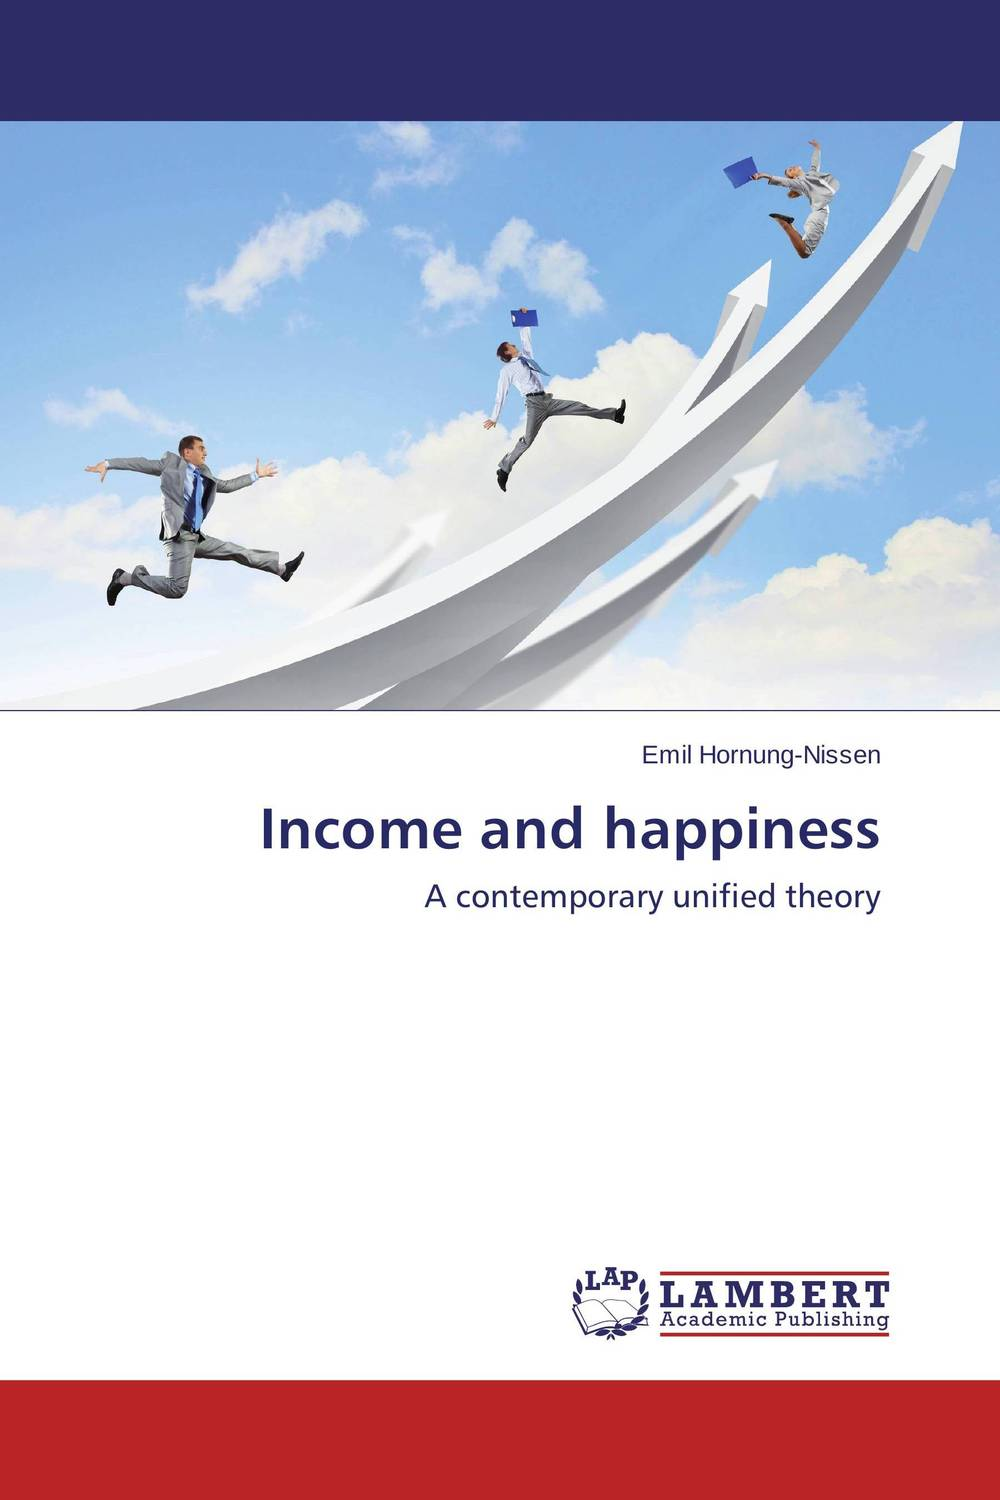 Income and happiness john m peckham iii a master guide to income property brokerage boost your income by selling commercial and income properties